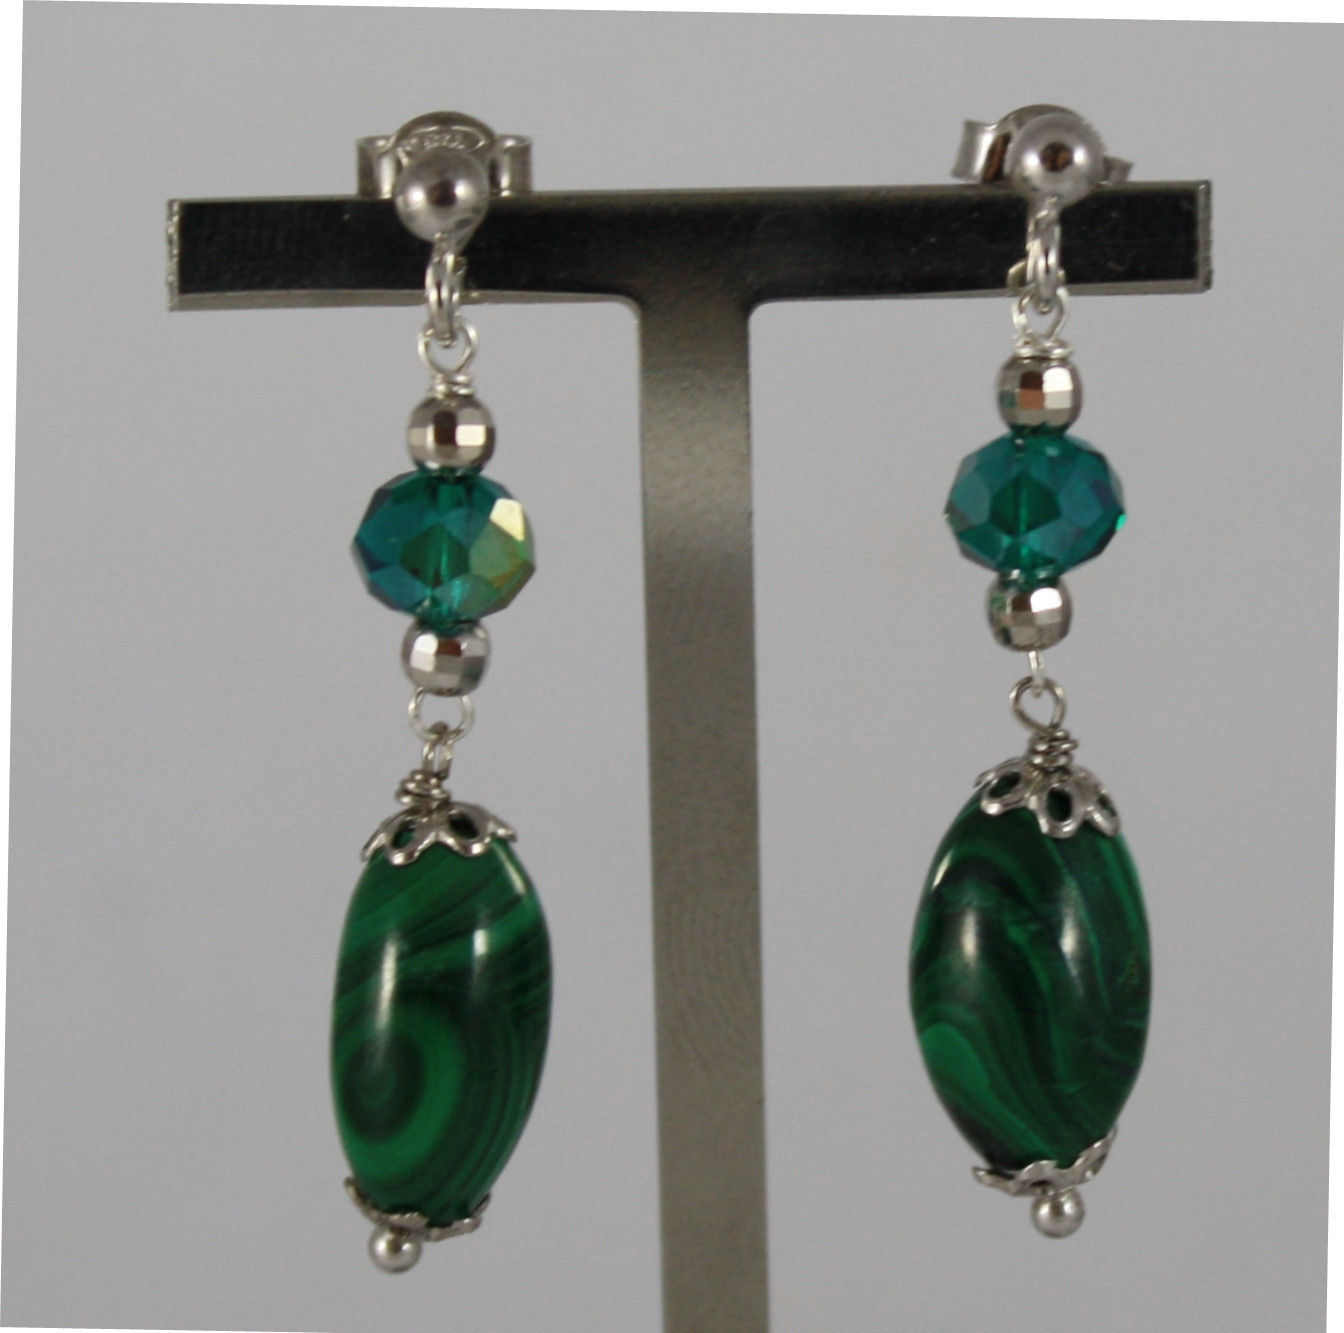 .925 RHODIUM SILVER EARRINGS WITH GREEN MALACHITE AND GREEN CRYSTALS